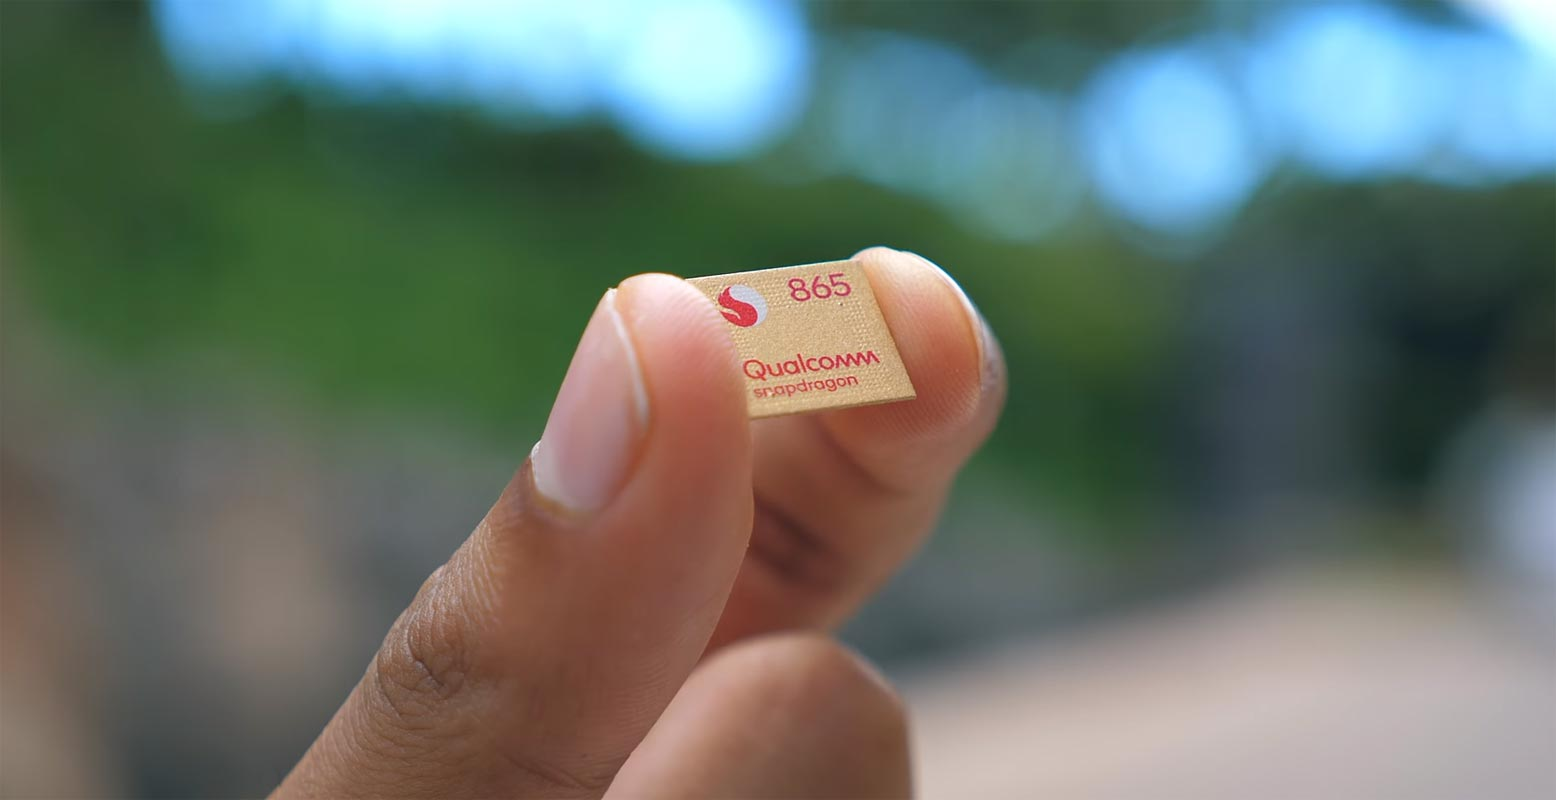 Qualcomm Snapdragon 865 in the Finger